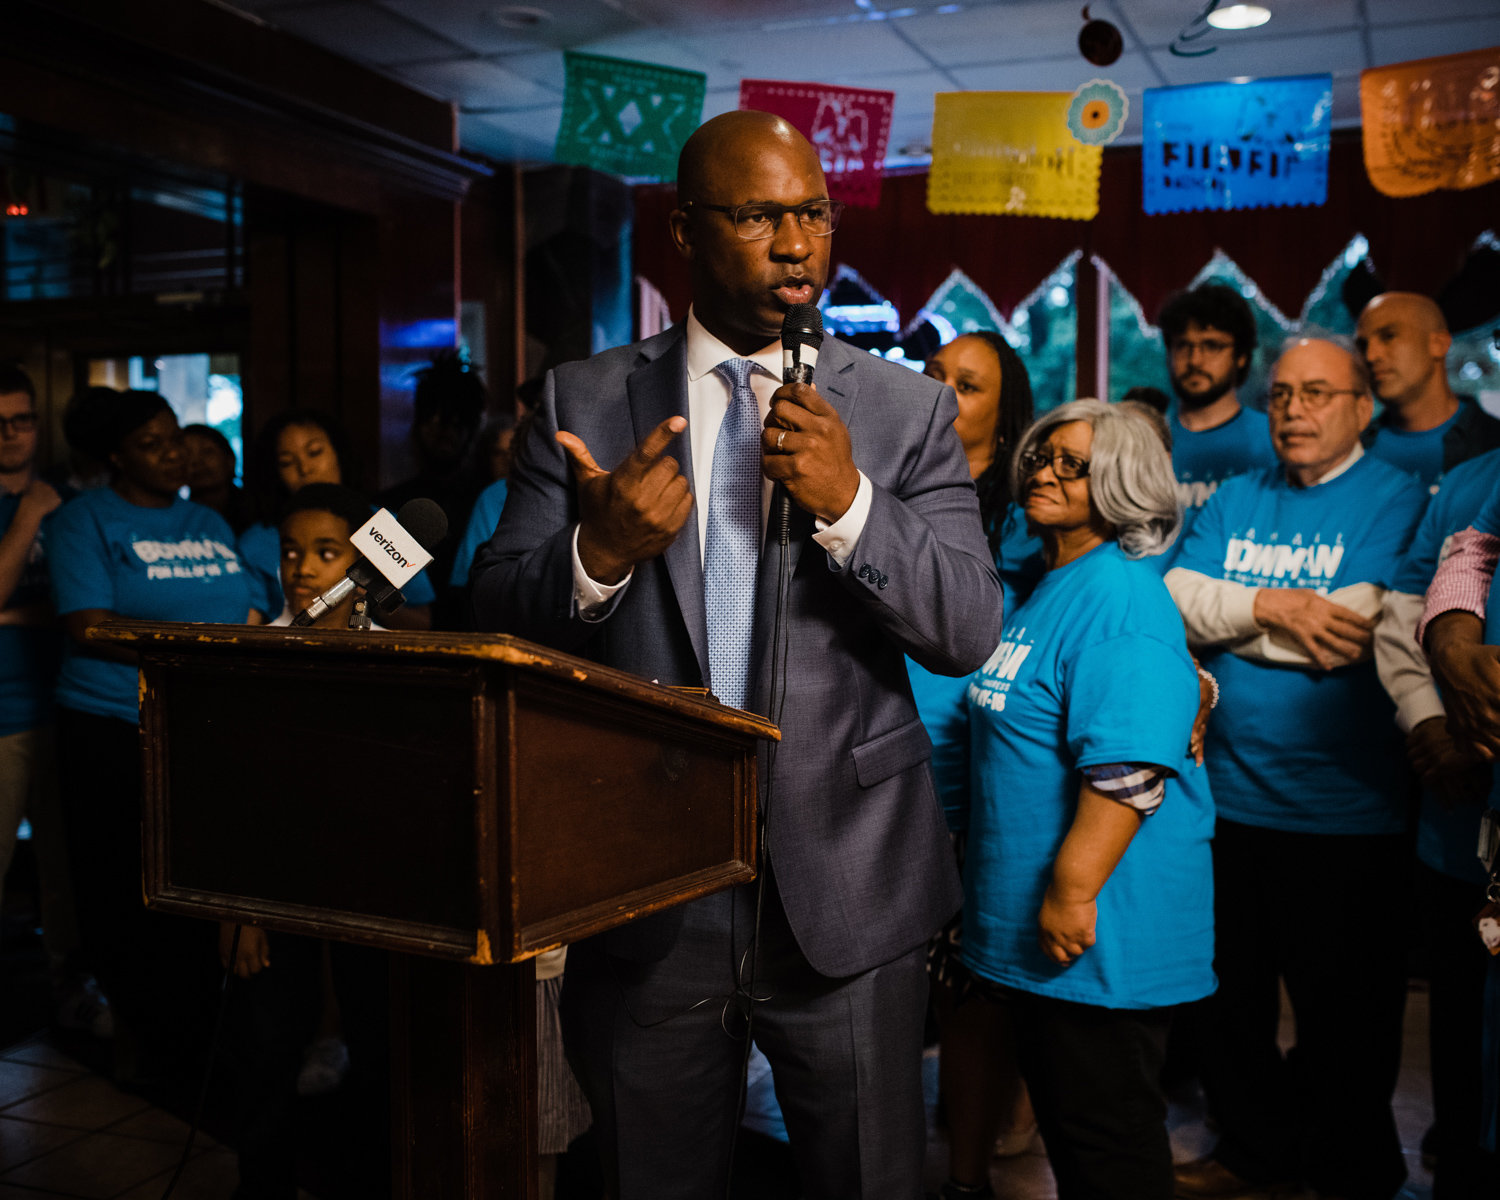 In the time since Jamaal Bowman launched his campaign last year, he has picked up a bevy of key endorsements in his bid to unseat 30-year incumbent, U.S. Rep. Eliot Engel.